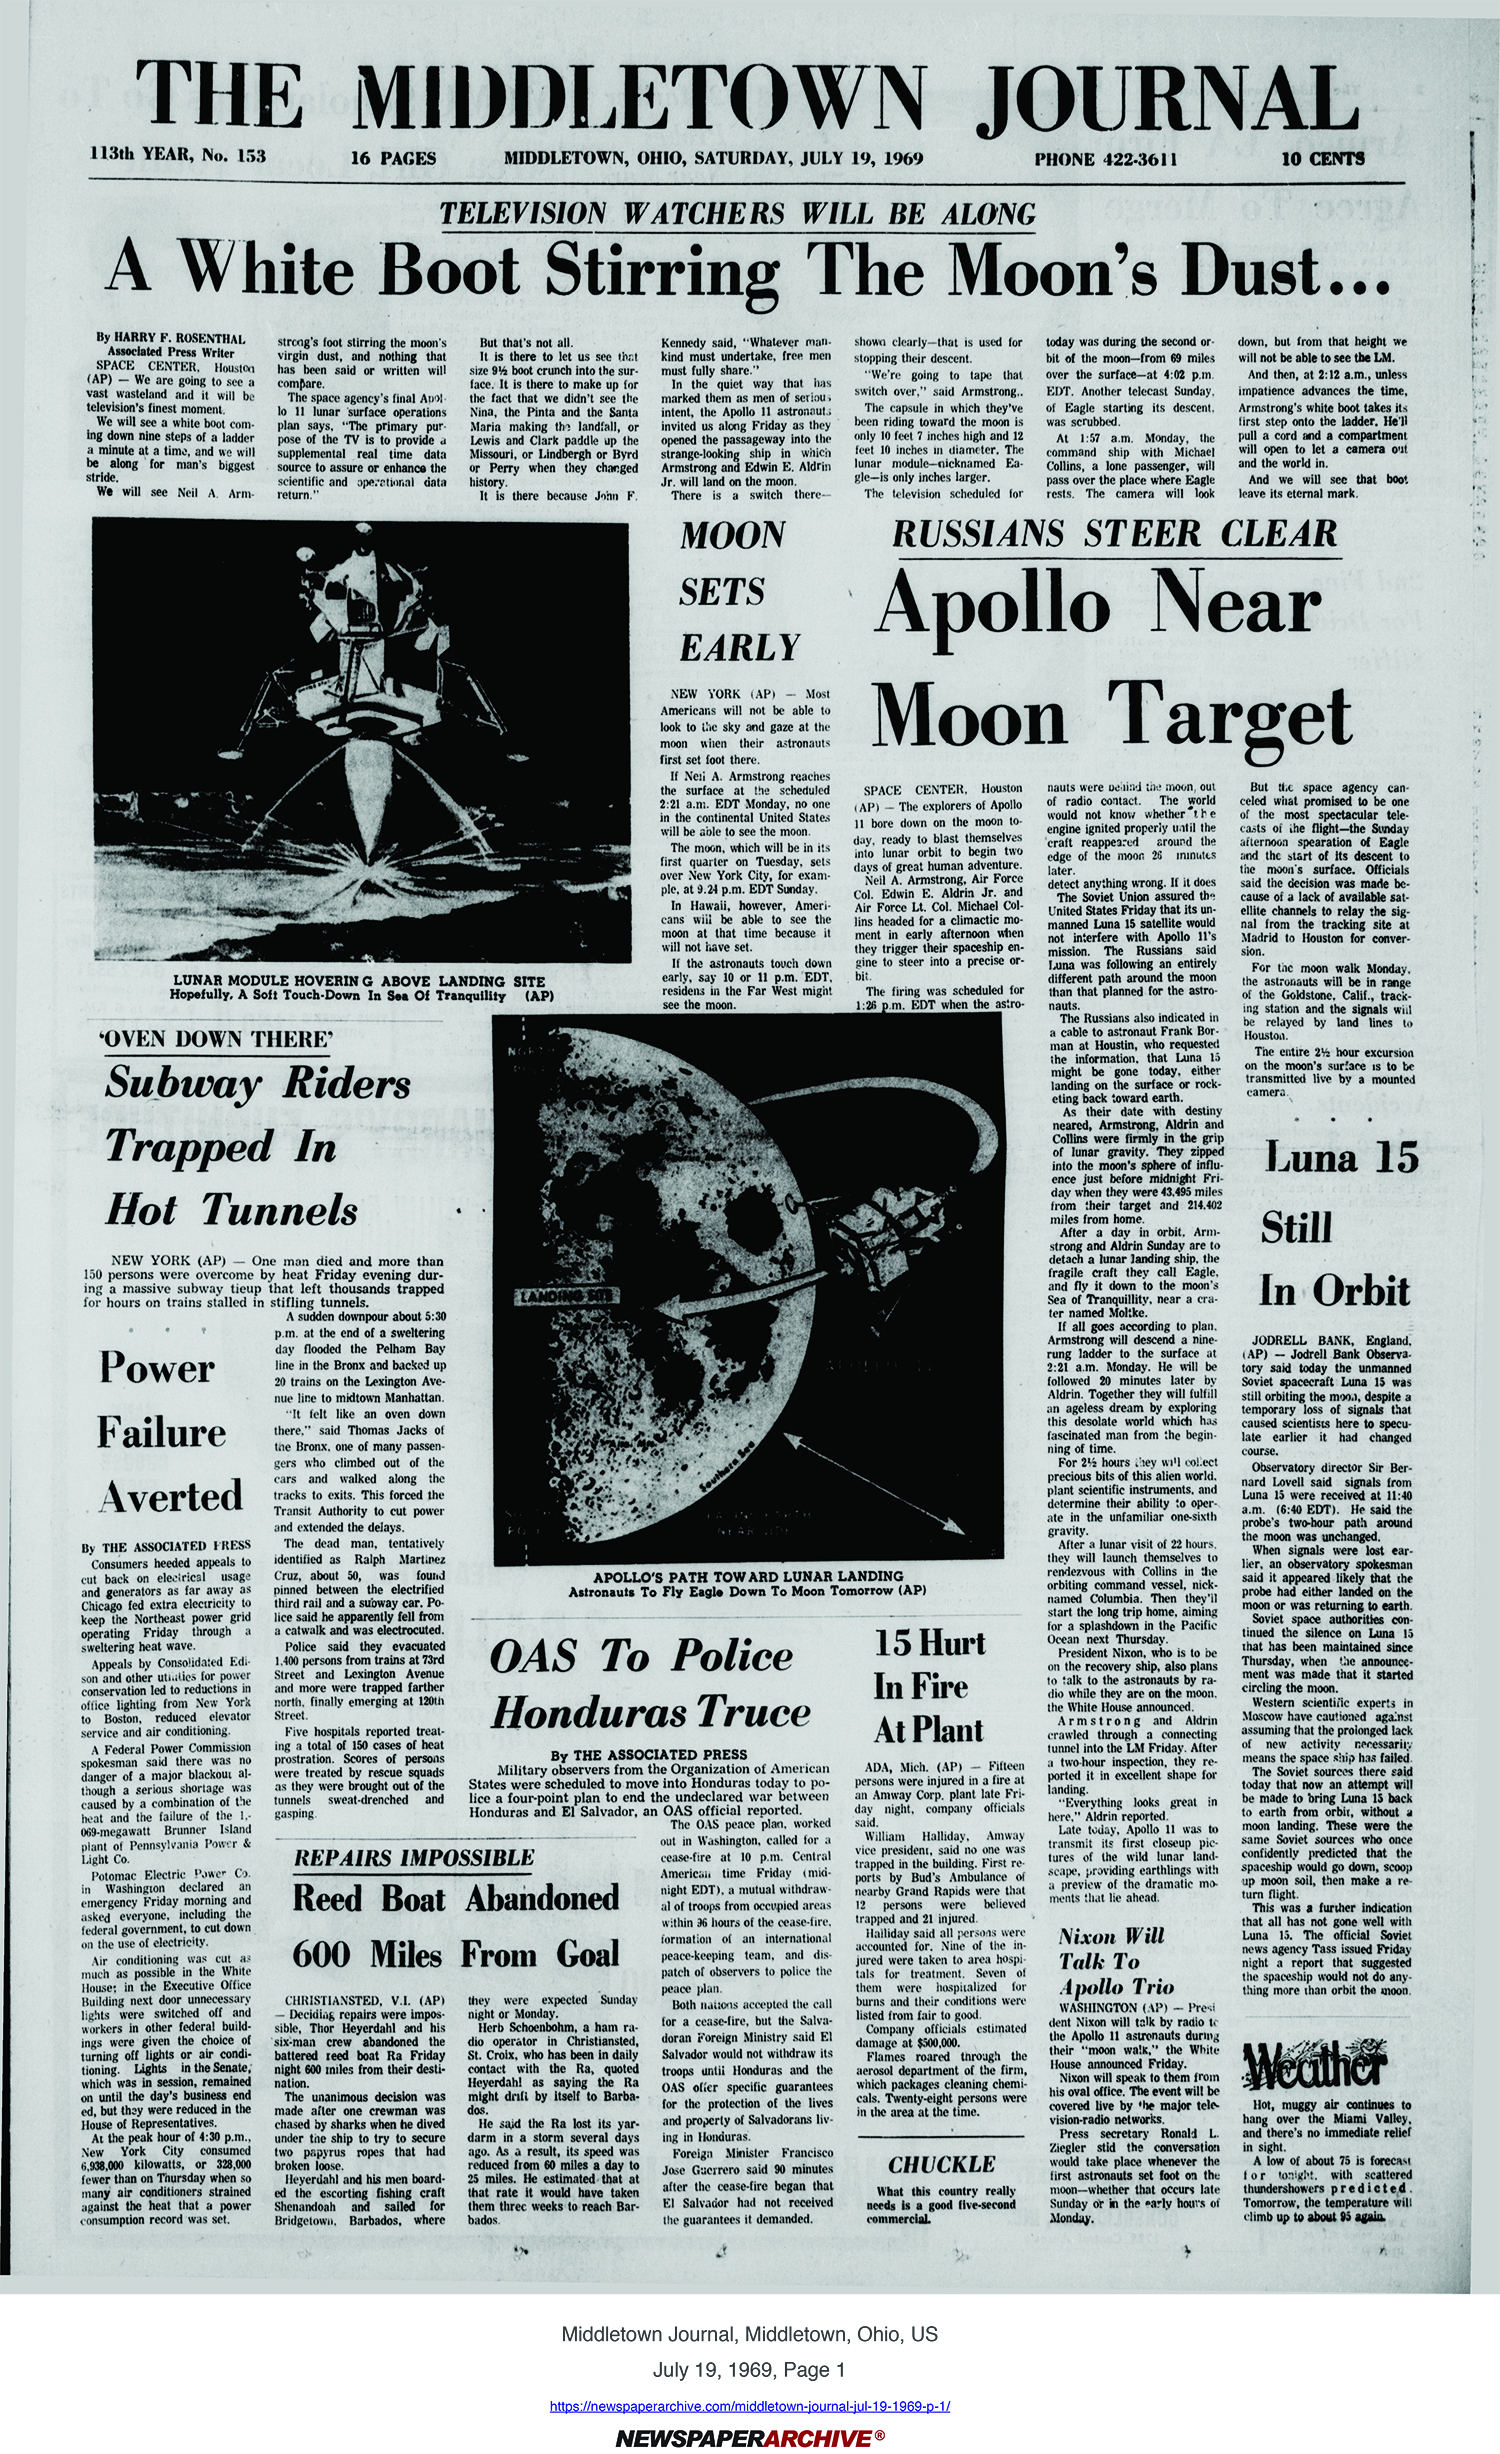 middletown-journal-Jul-19-1969-p-1.jpg